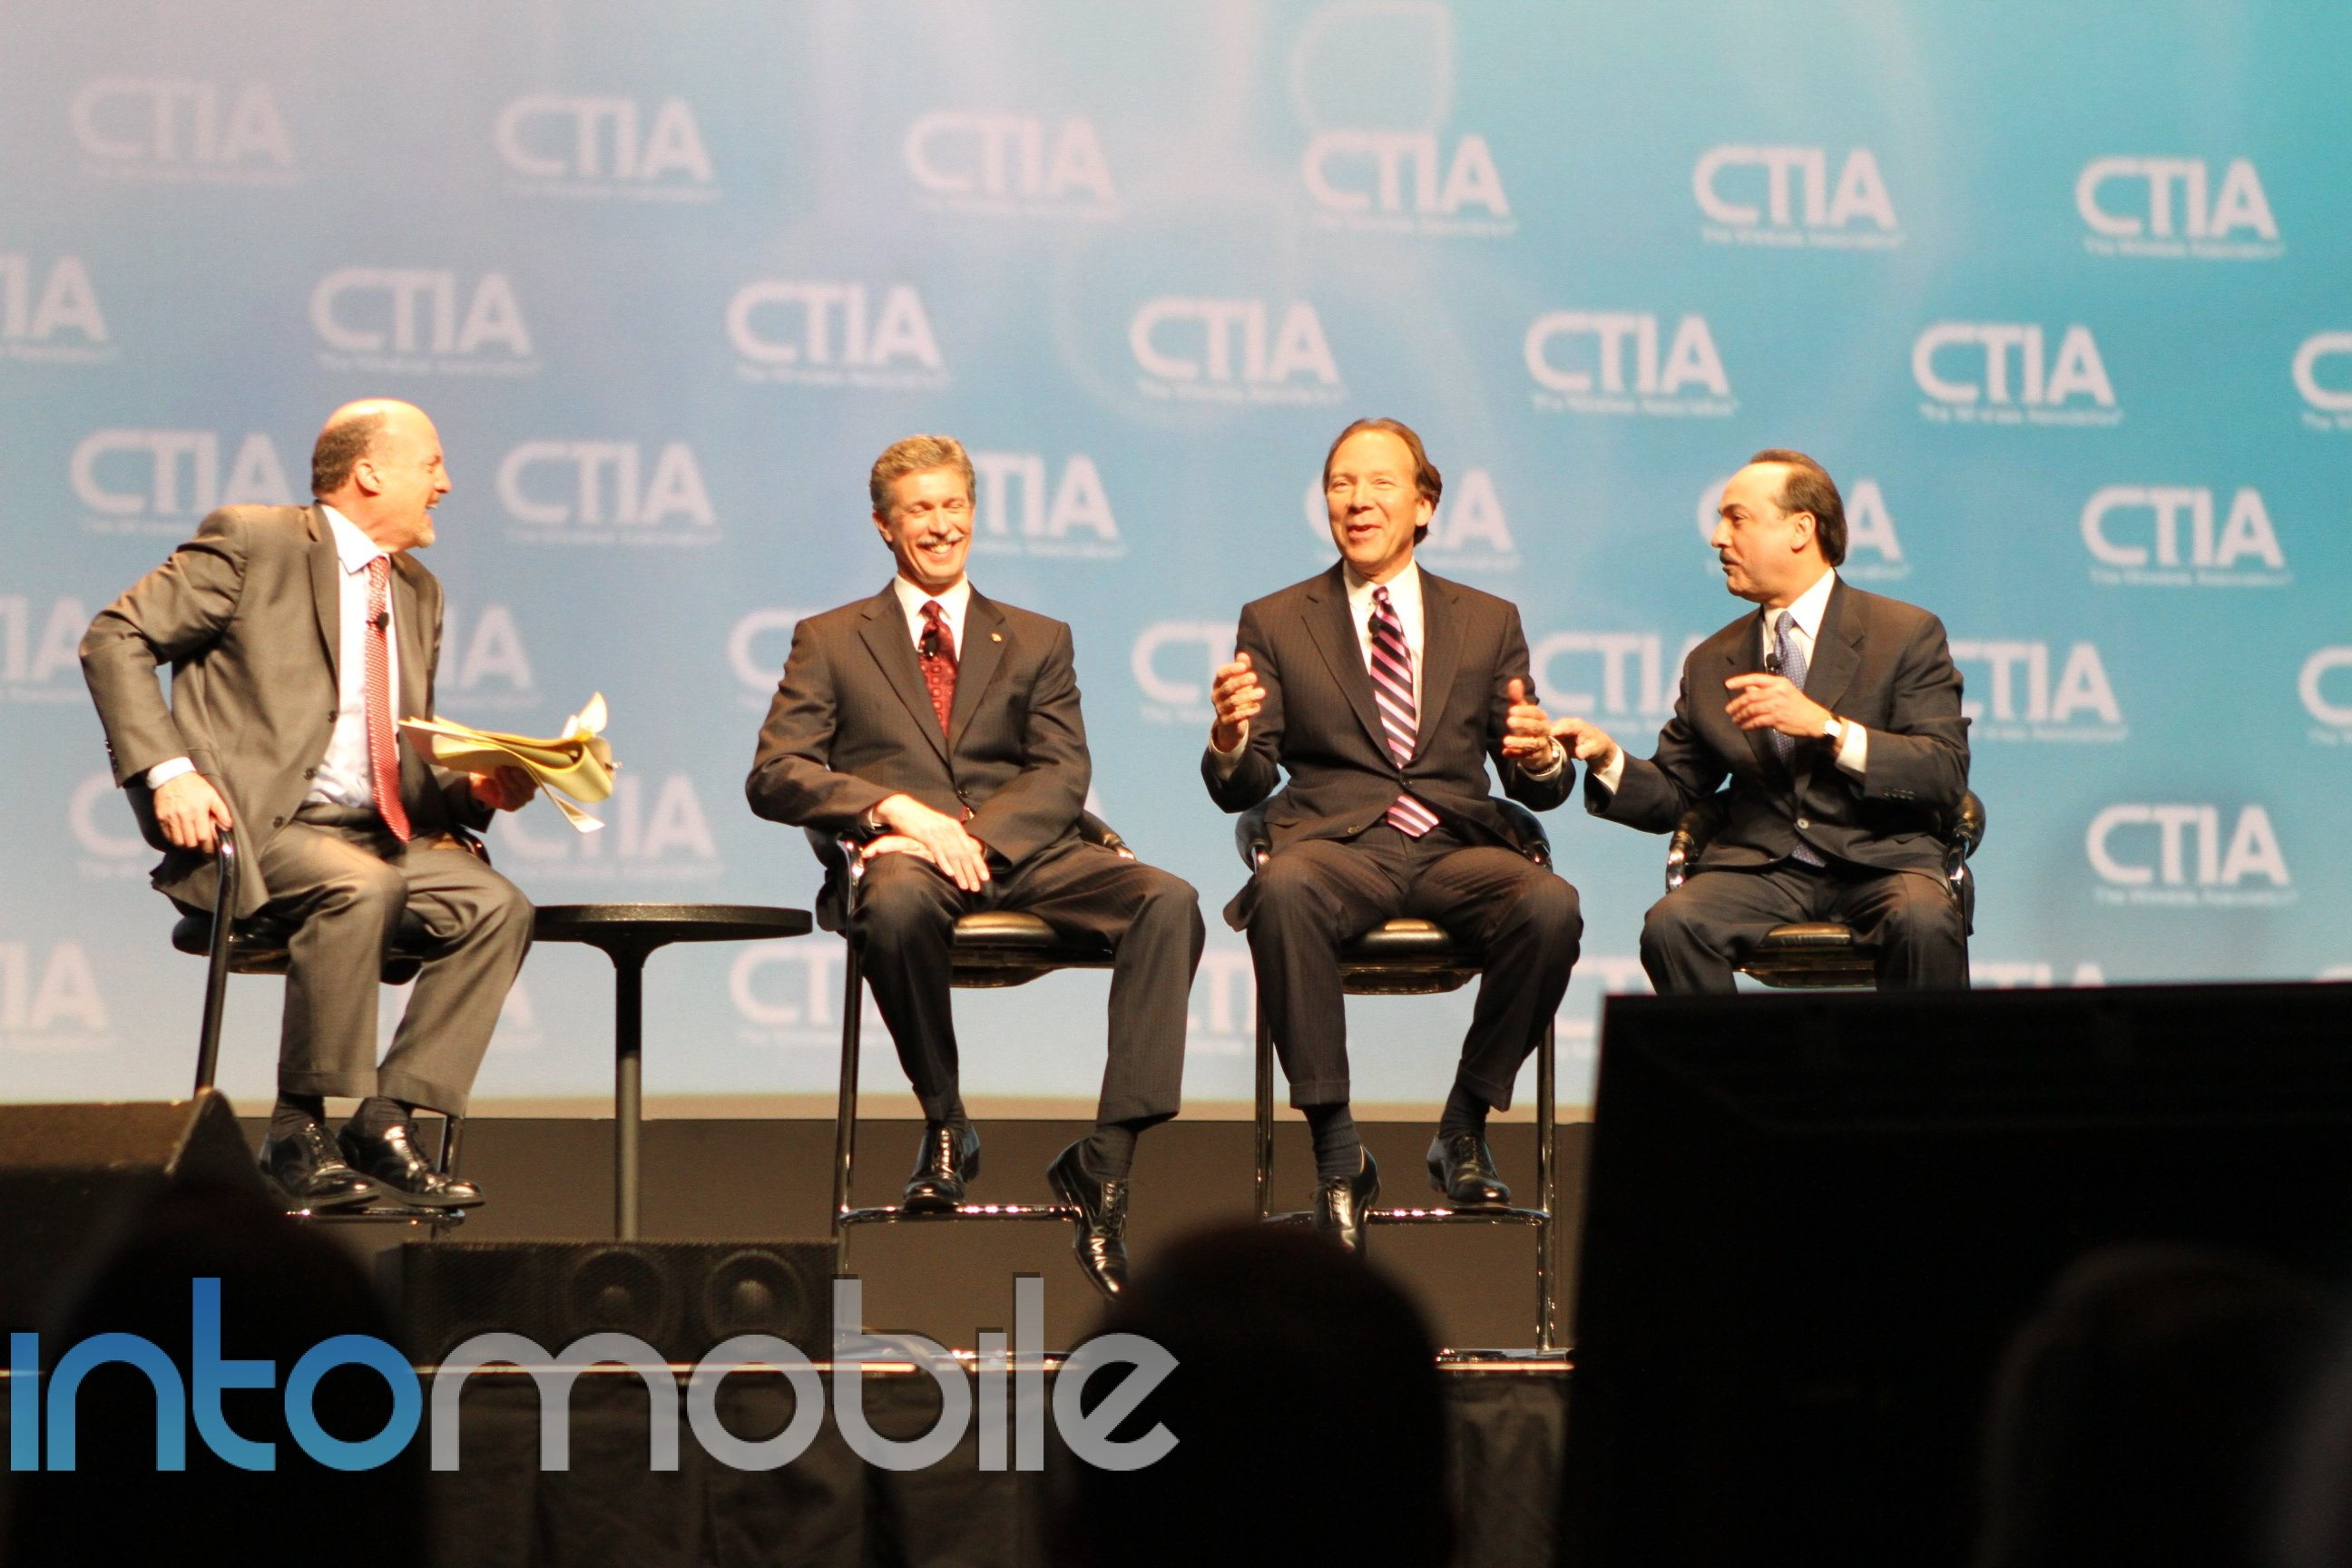 Sprint takes shots at AT&T 4G at CTIA